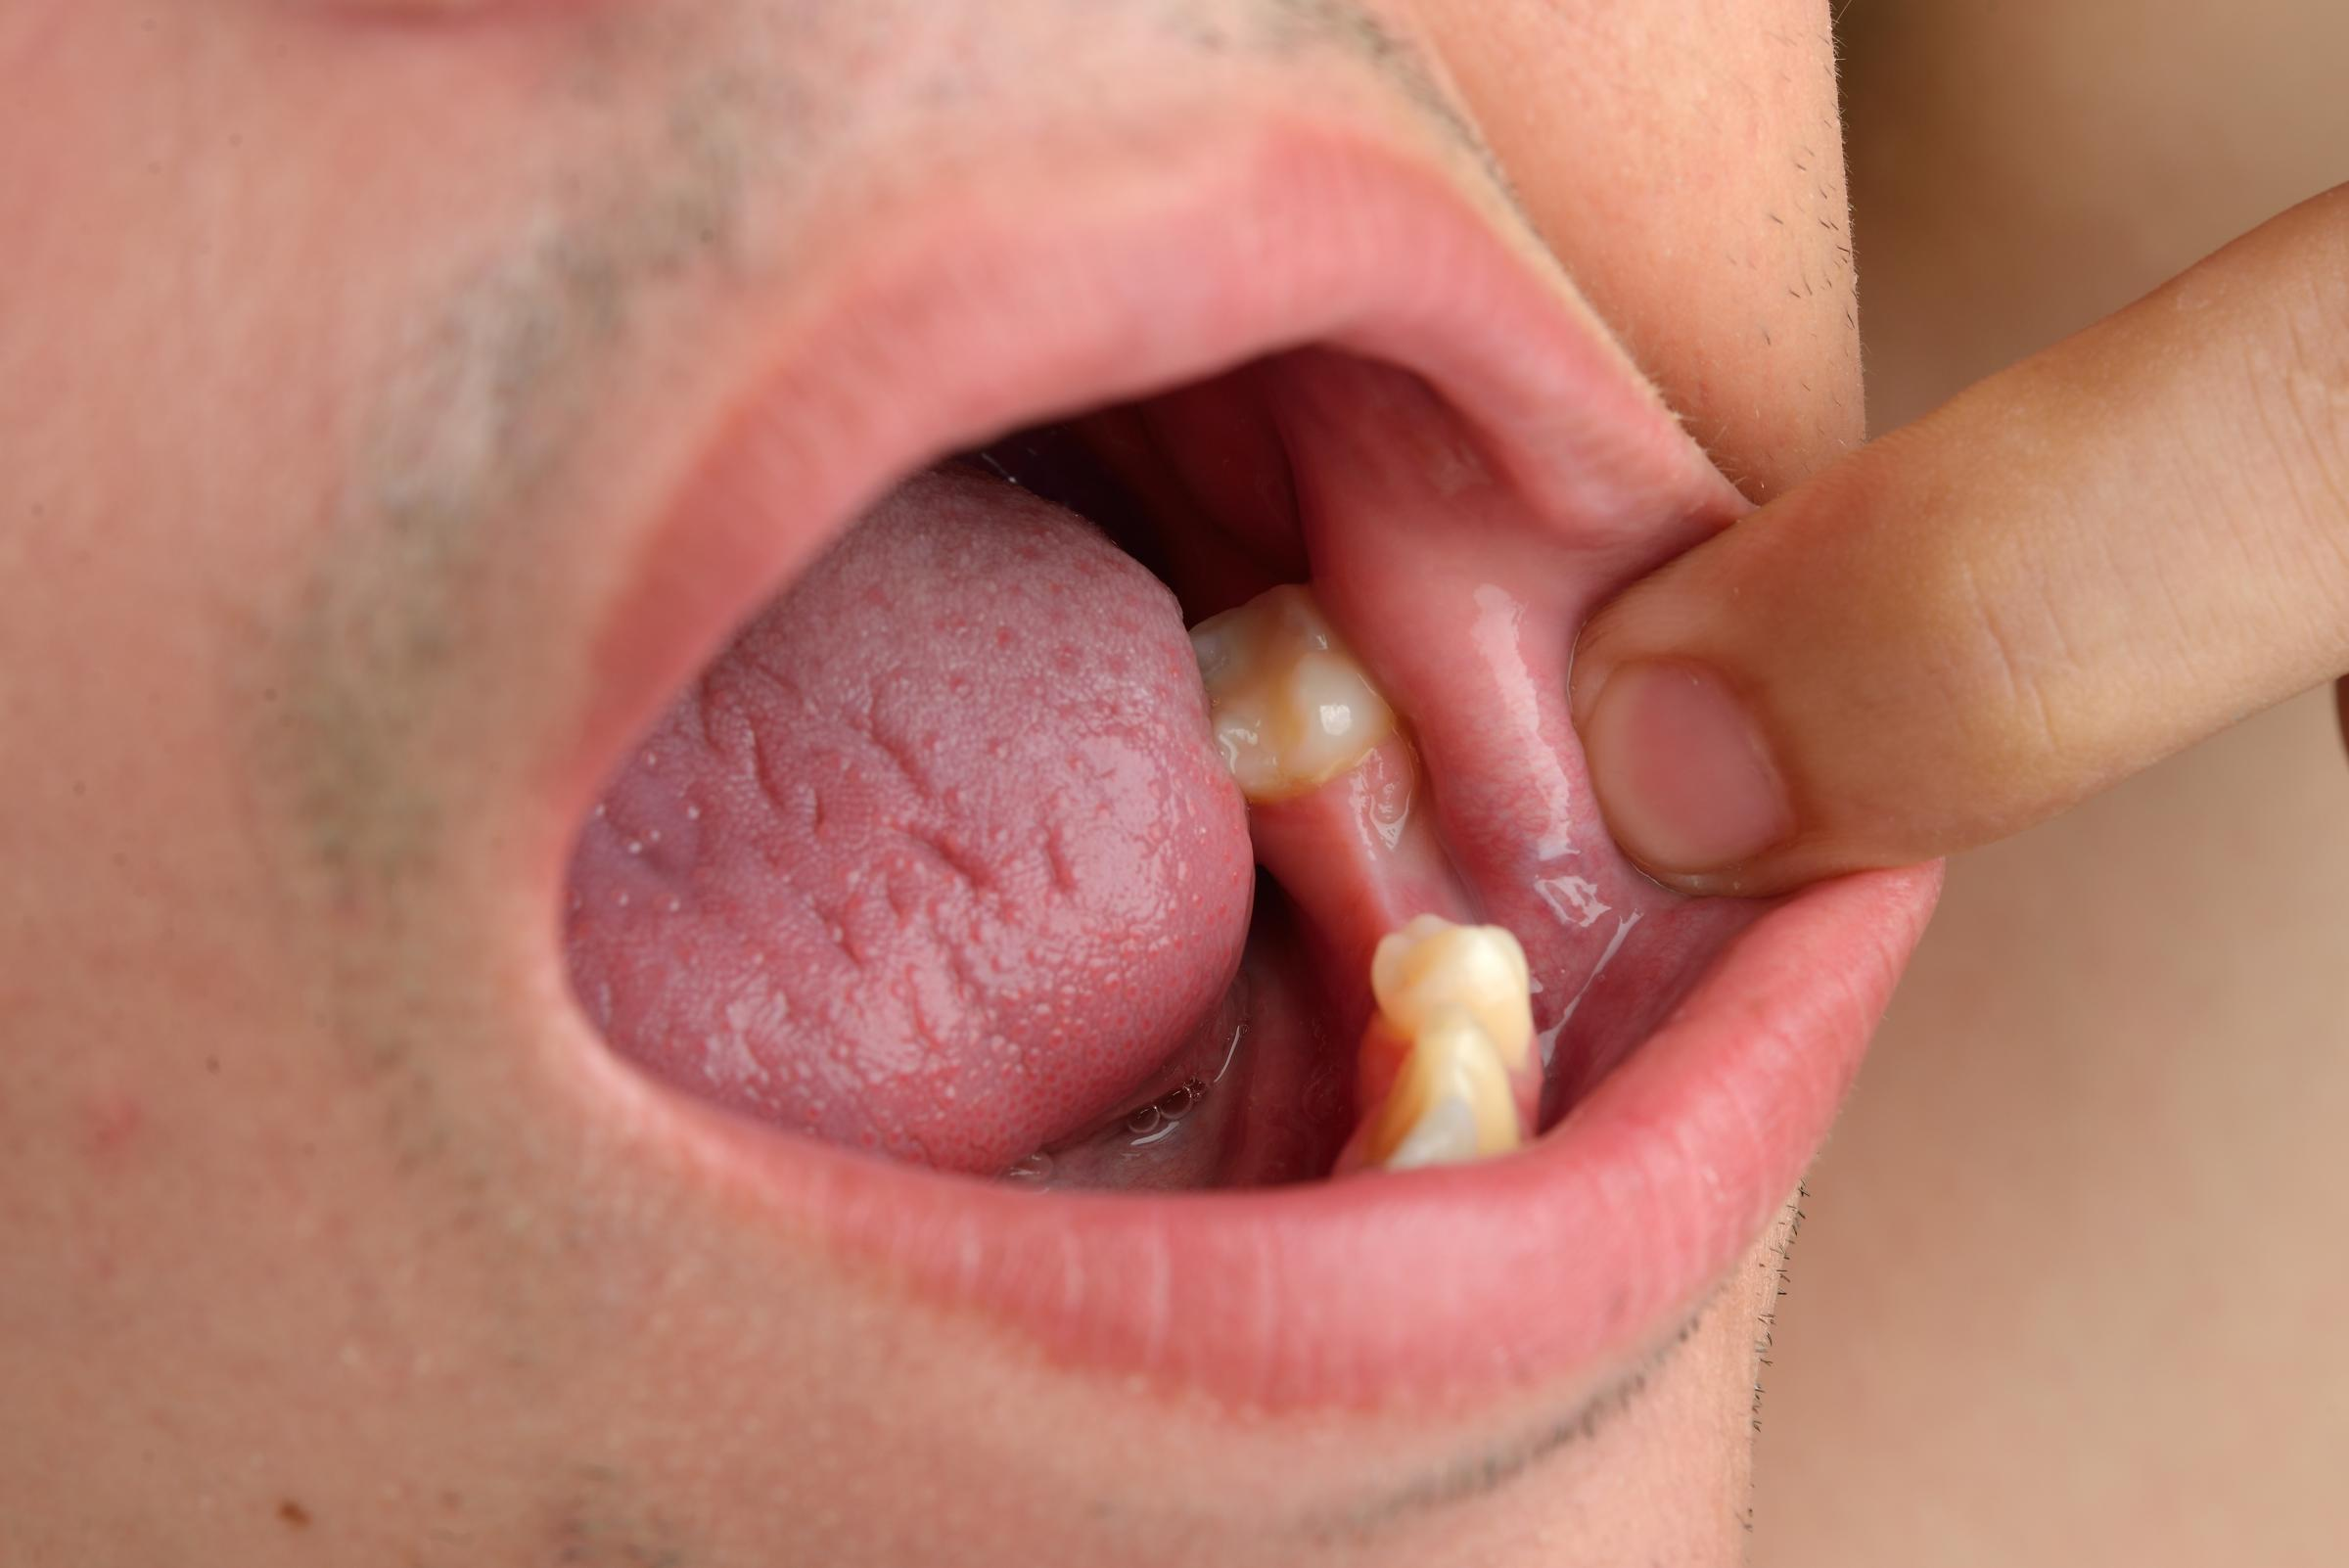 Runcorn patients top of table for tooth decay